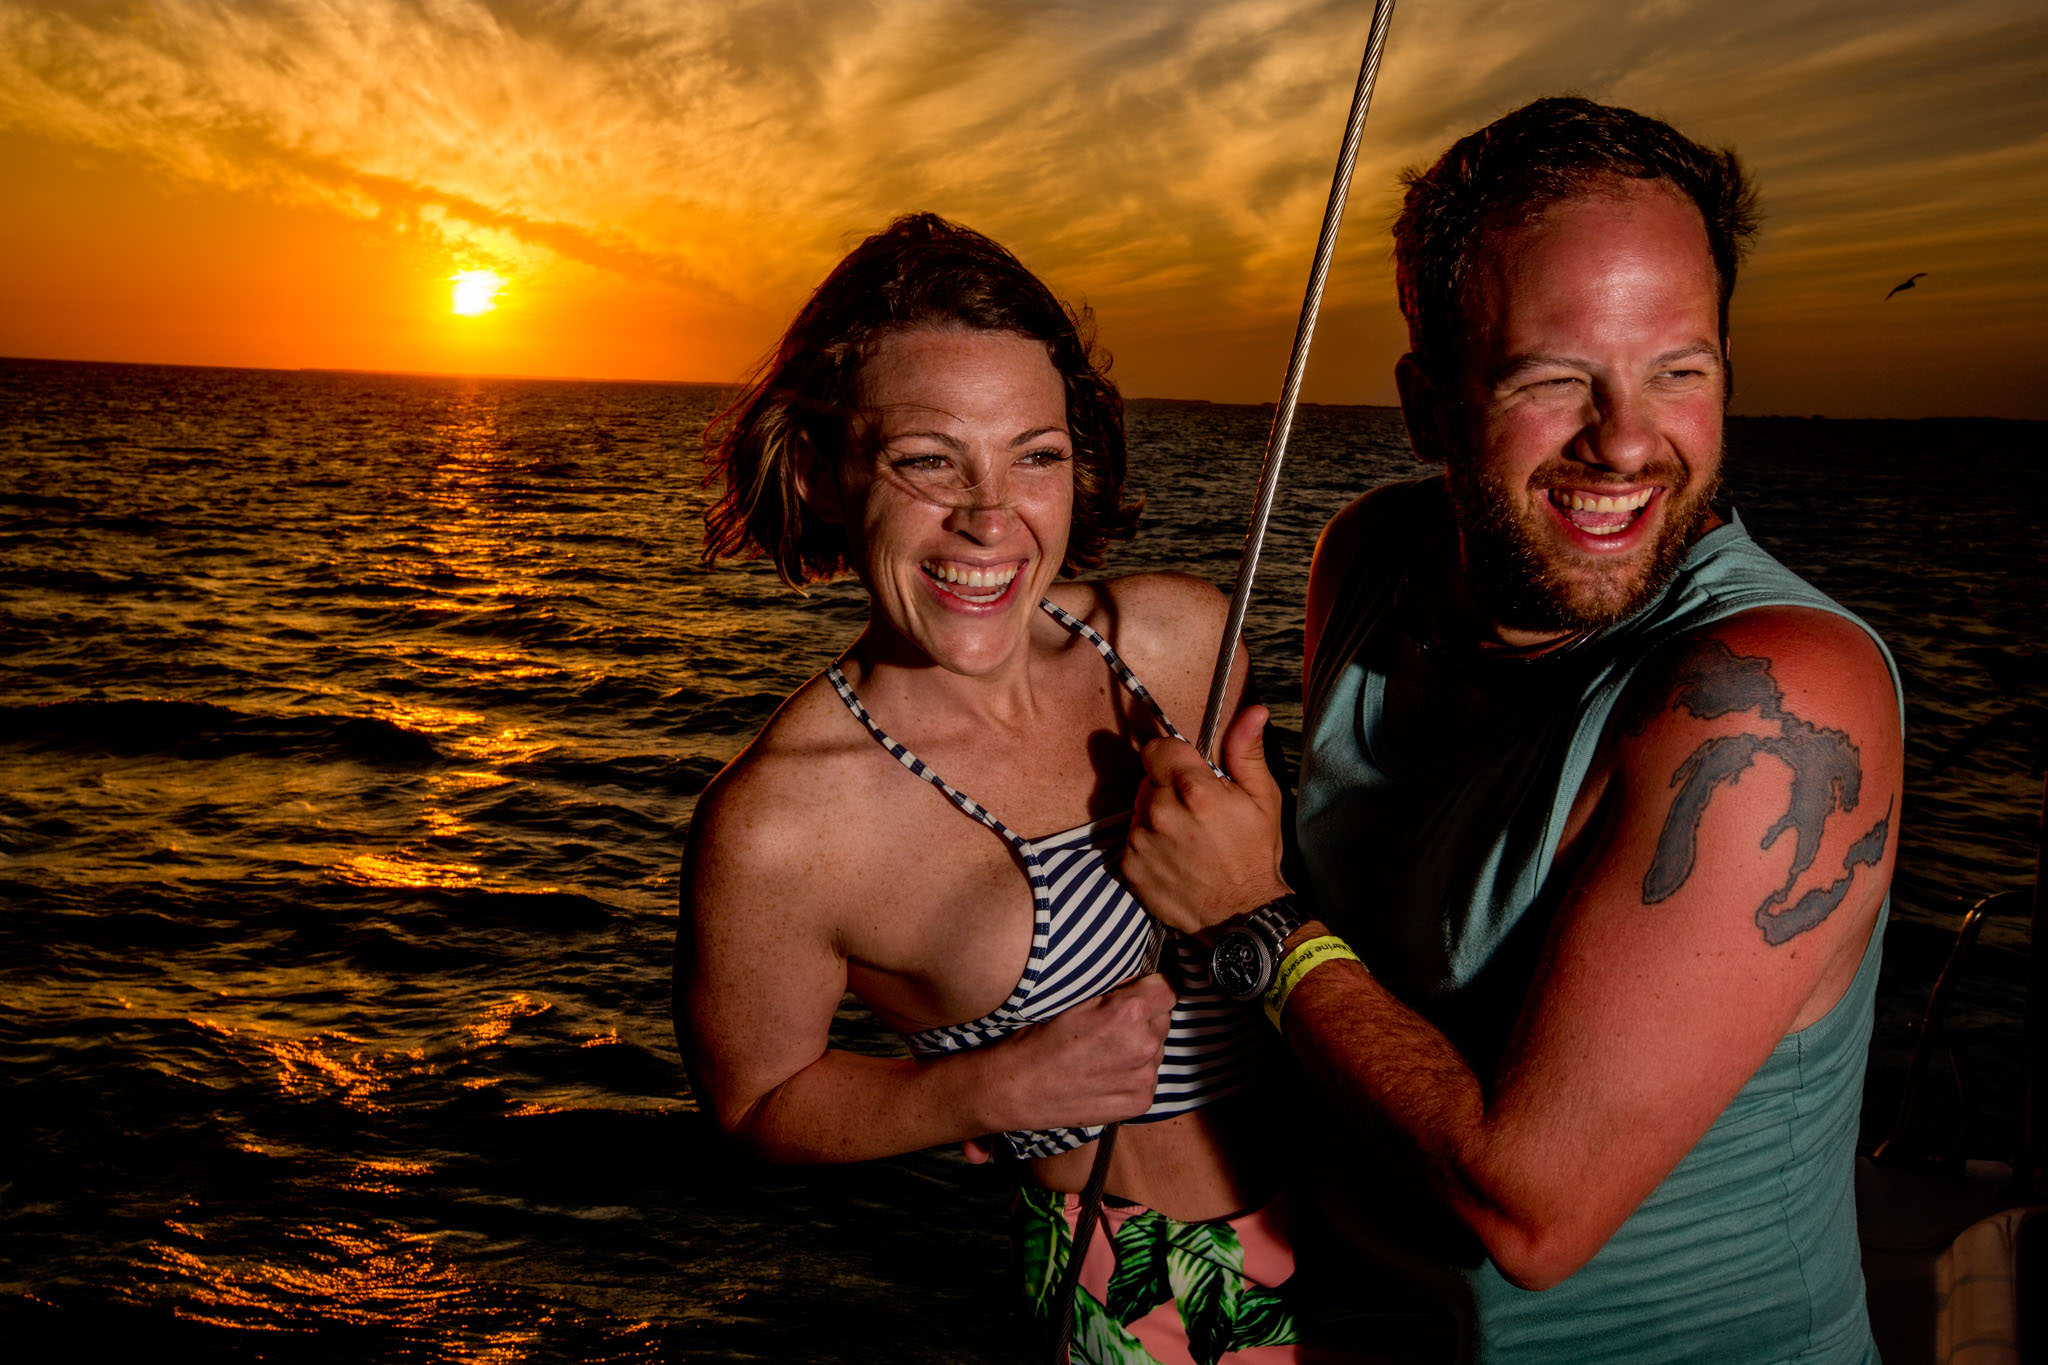 Bride and Groom to be at golden sunset on catamaran in Belize for brides birthday cruise day before wedding at Portofino Beach Resort